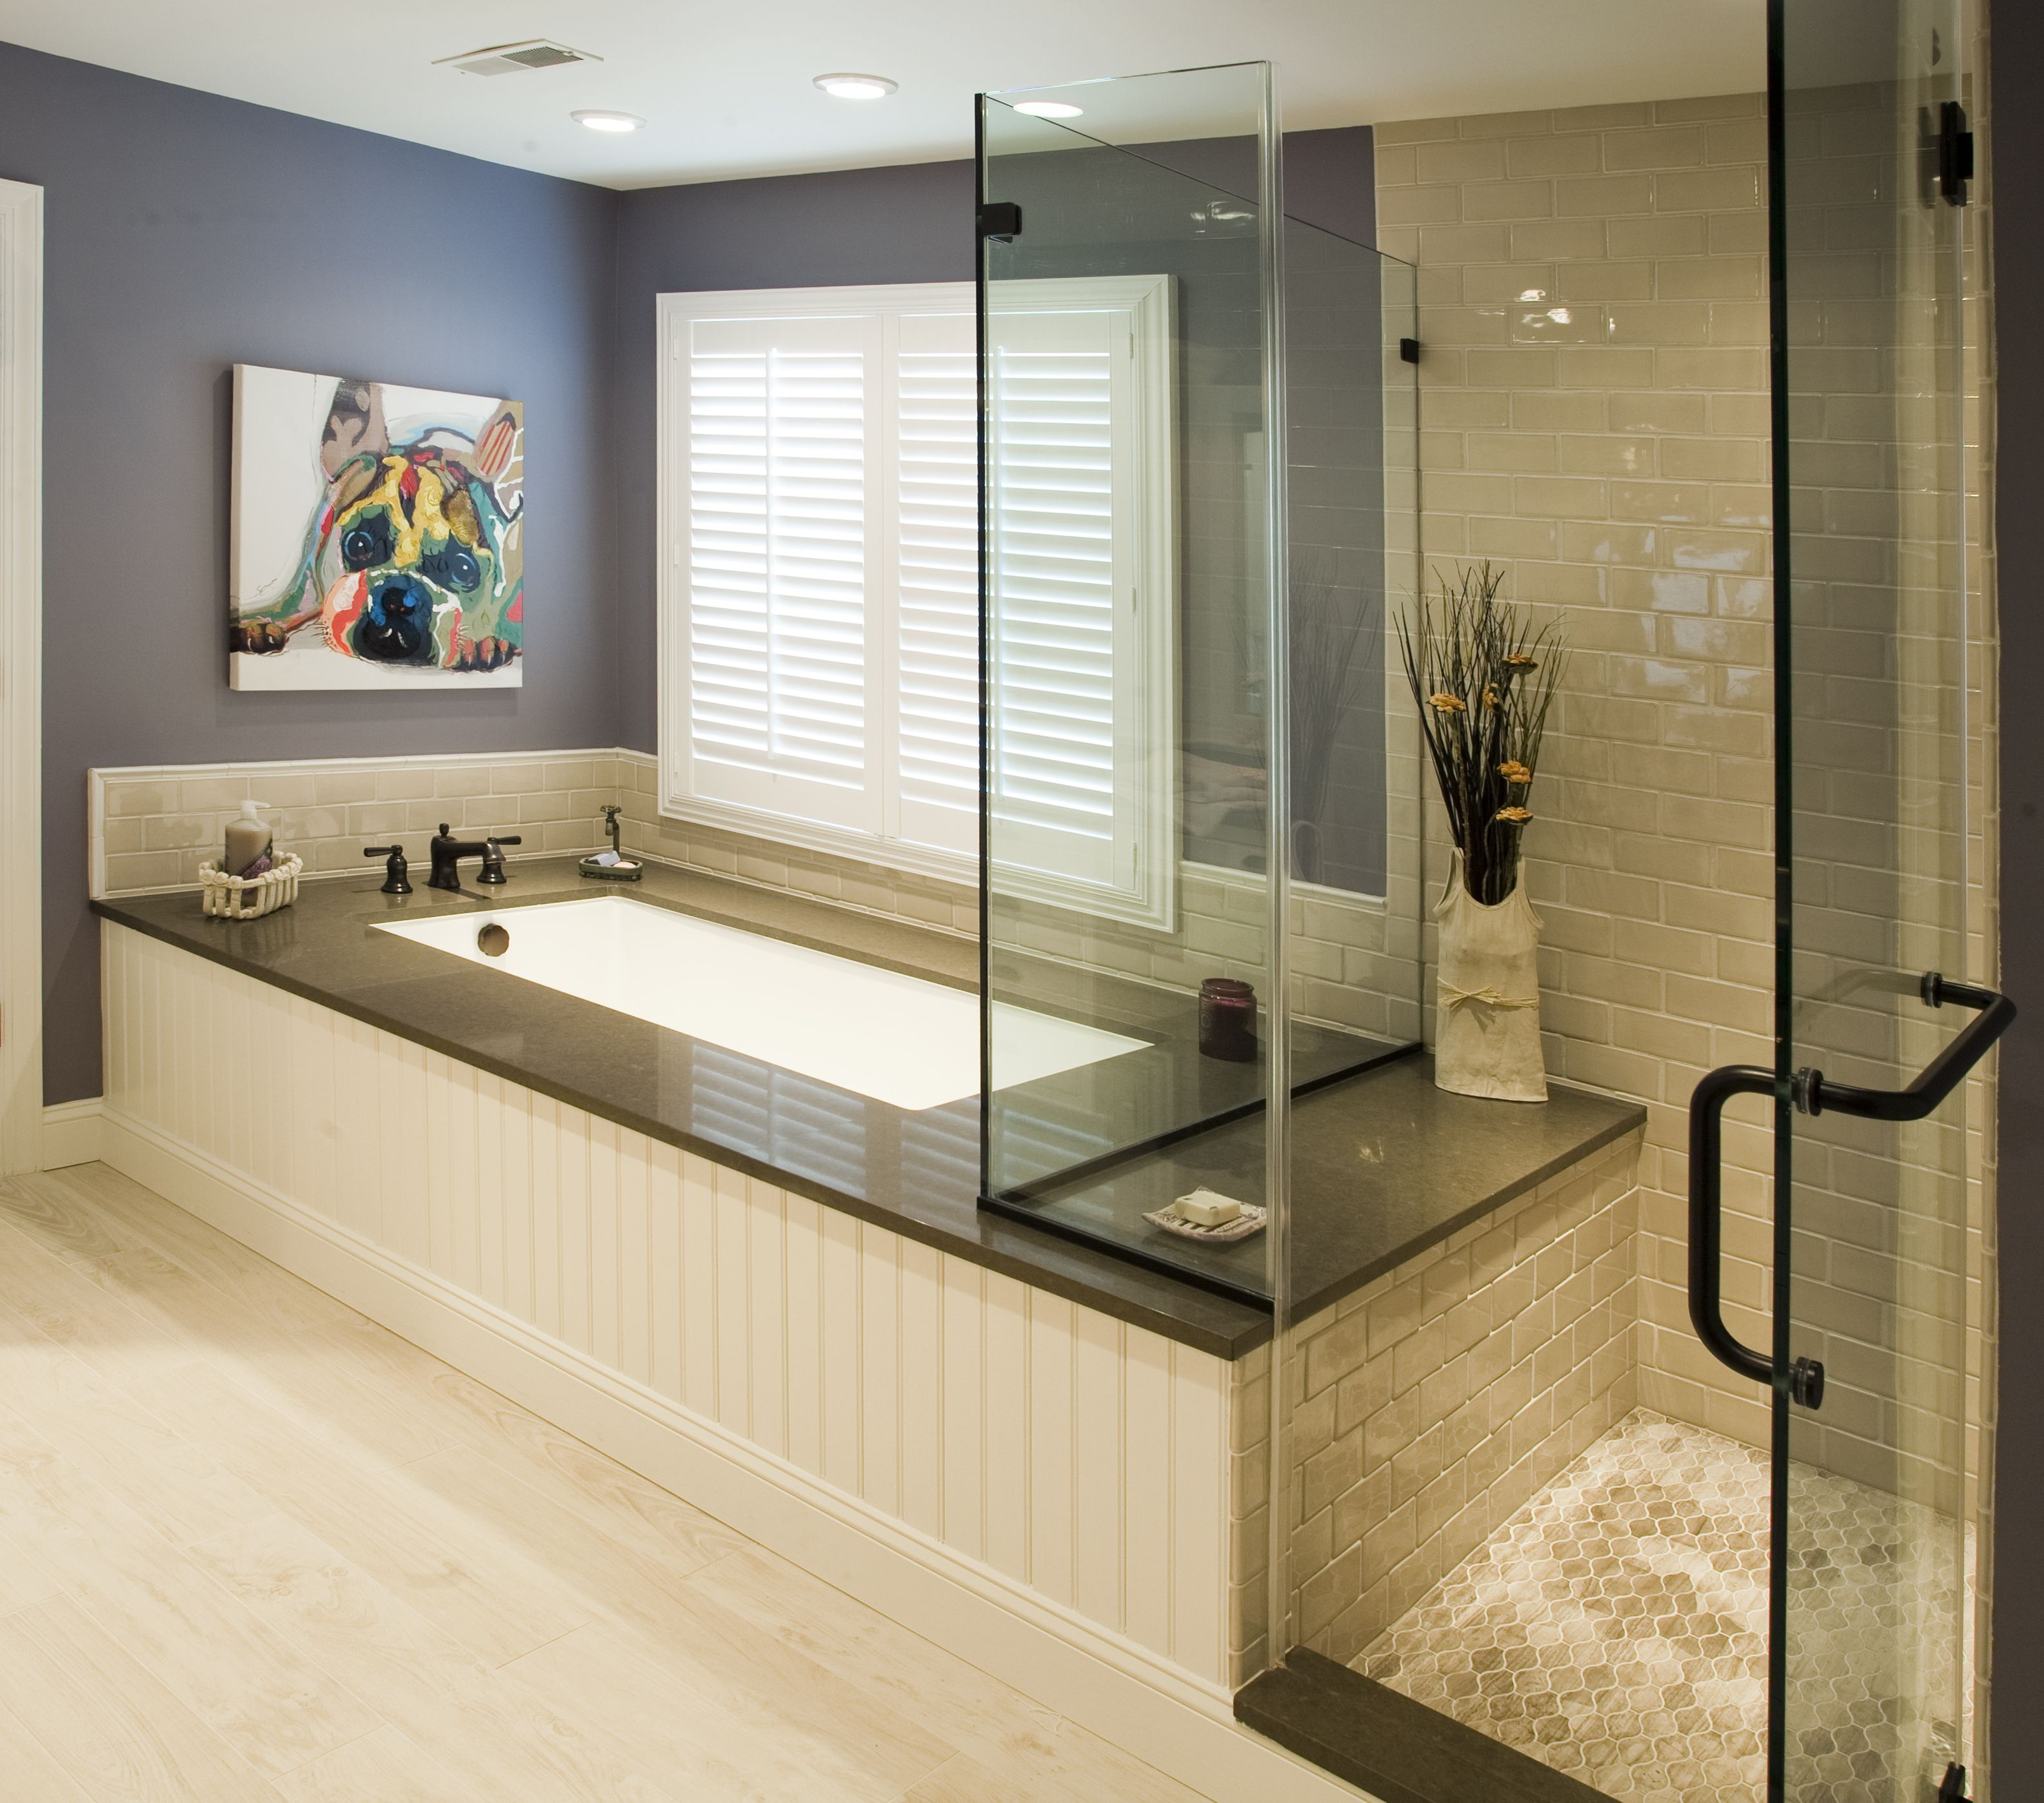 Pin By First Class Remodeling Suppliers On Bathroom Remodeling - Bathroom remodeling bucks county